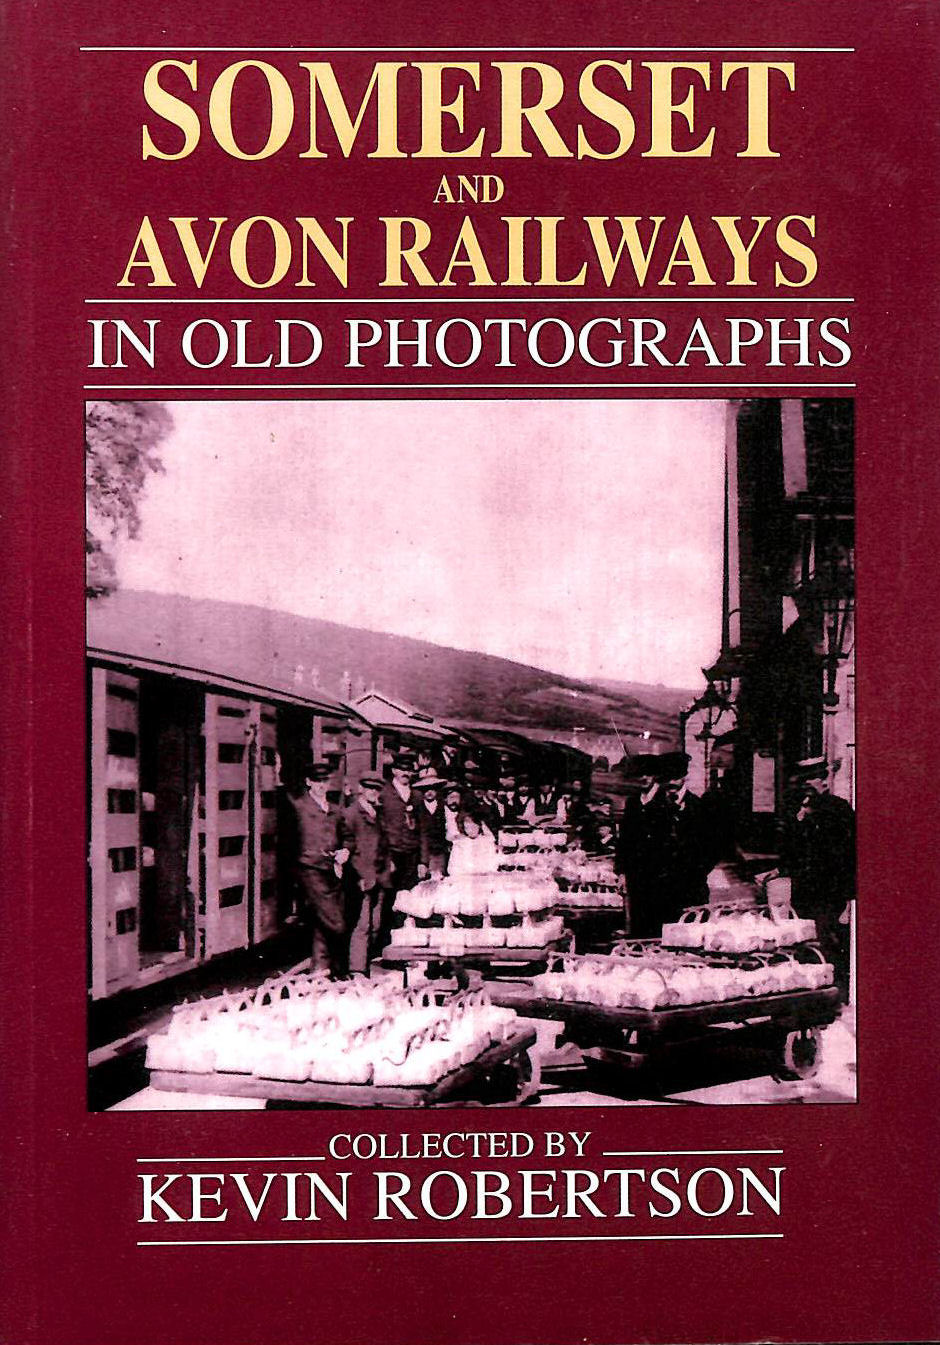 Image for Somerset and Avon Railways in Old Photographs